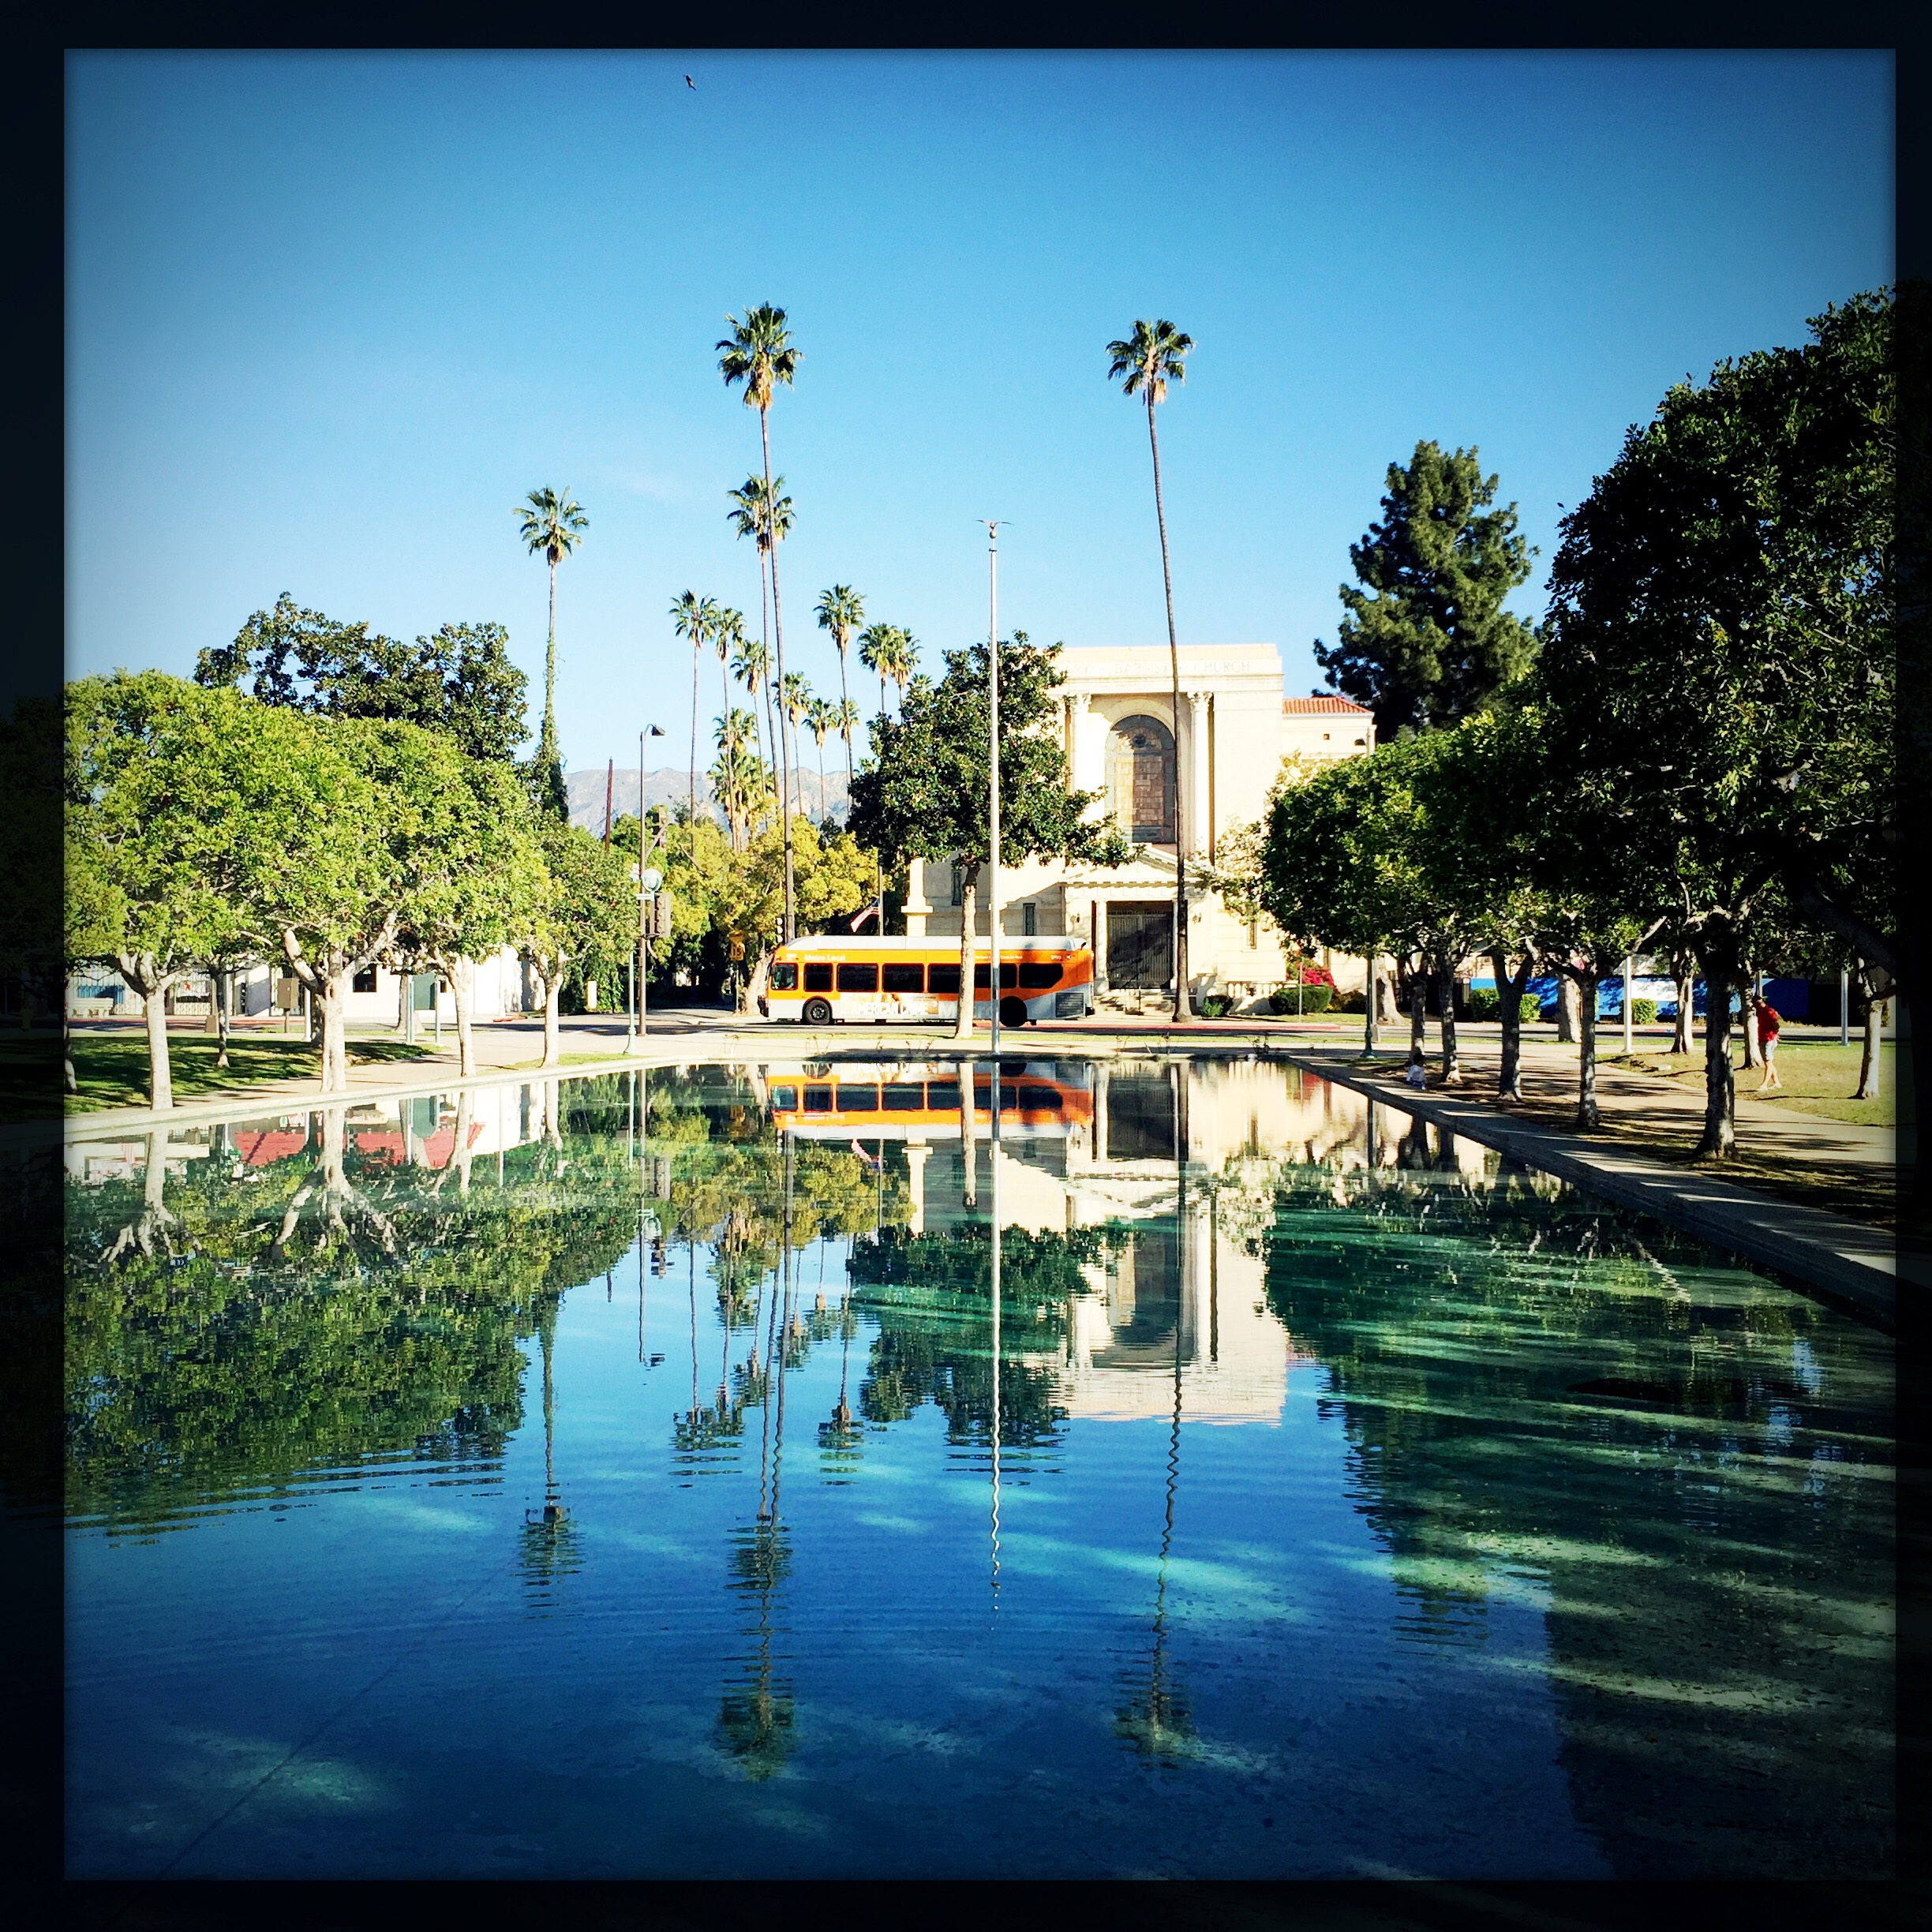 ART OF TRANSIT: The Metro Local 181 passes by the fountain at Pasadena City College on Saturday morning. Photo by Steve Hymon/Metro.